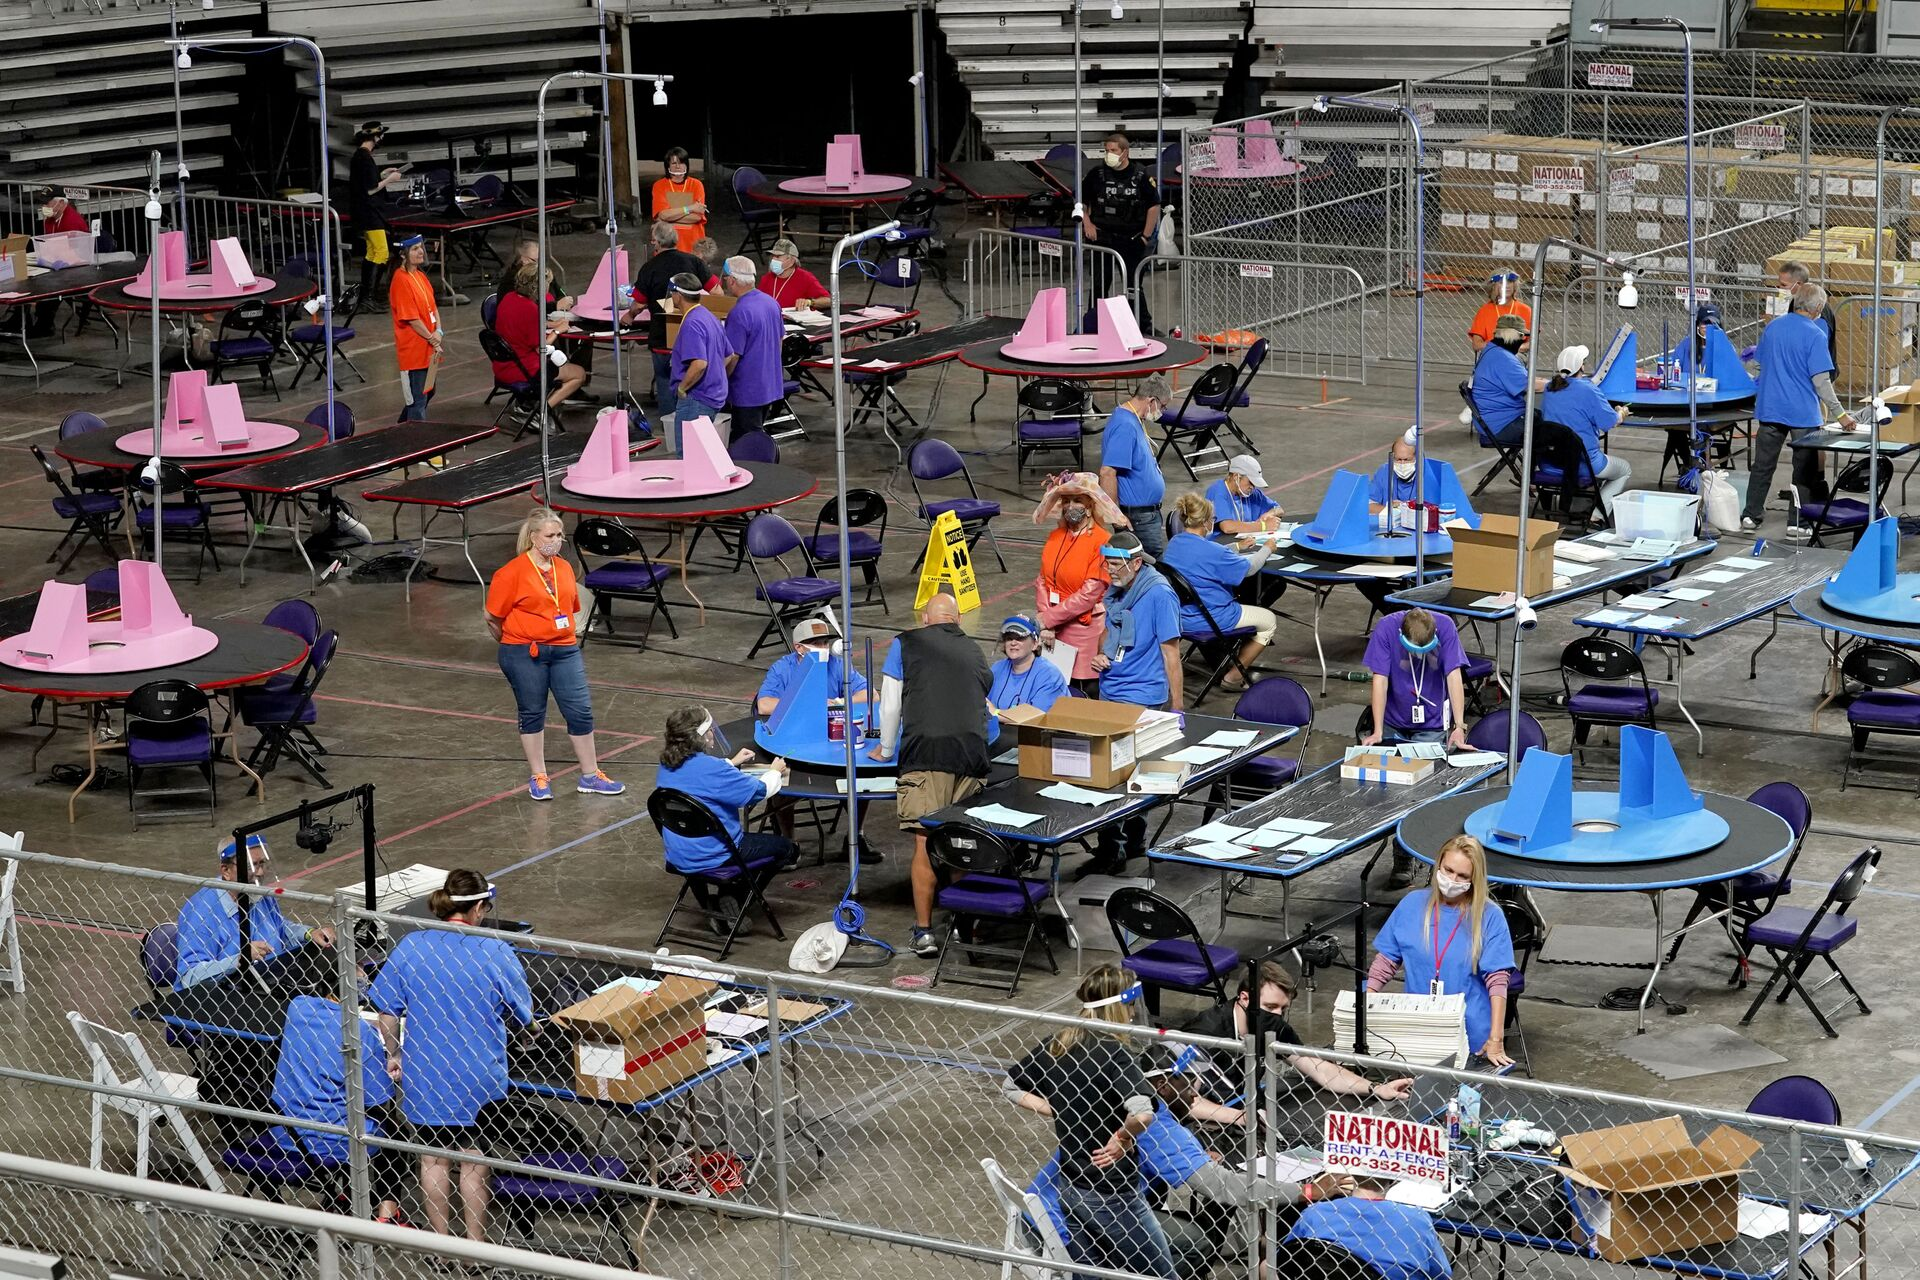 In this May 6, 2021, file photo, Maricopa County ballots cast in the 2020 general election are examined and recounted by contractors working for Florida-based company, Cyber Ninjas at Veterans Memorial Coliseum in Phoenix. Arizona's largest county has approved nearly $3 million for new vote-counting machines to replace those given to legislative Republicans for a partisan review of the 2020 election. The GOP-controlled Maricopa County Board of Supervisors said Wednesday, July 14, 2021 that the machines were compromised because they were in the control of firms not accredited to handle election equipment. (AP Photo/Matt York, Pool, File) - Sputnik International, 1920, 07.09.2021